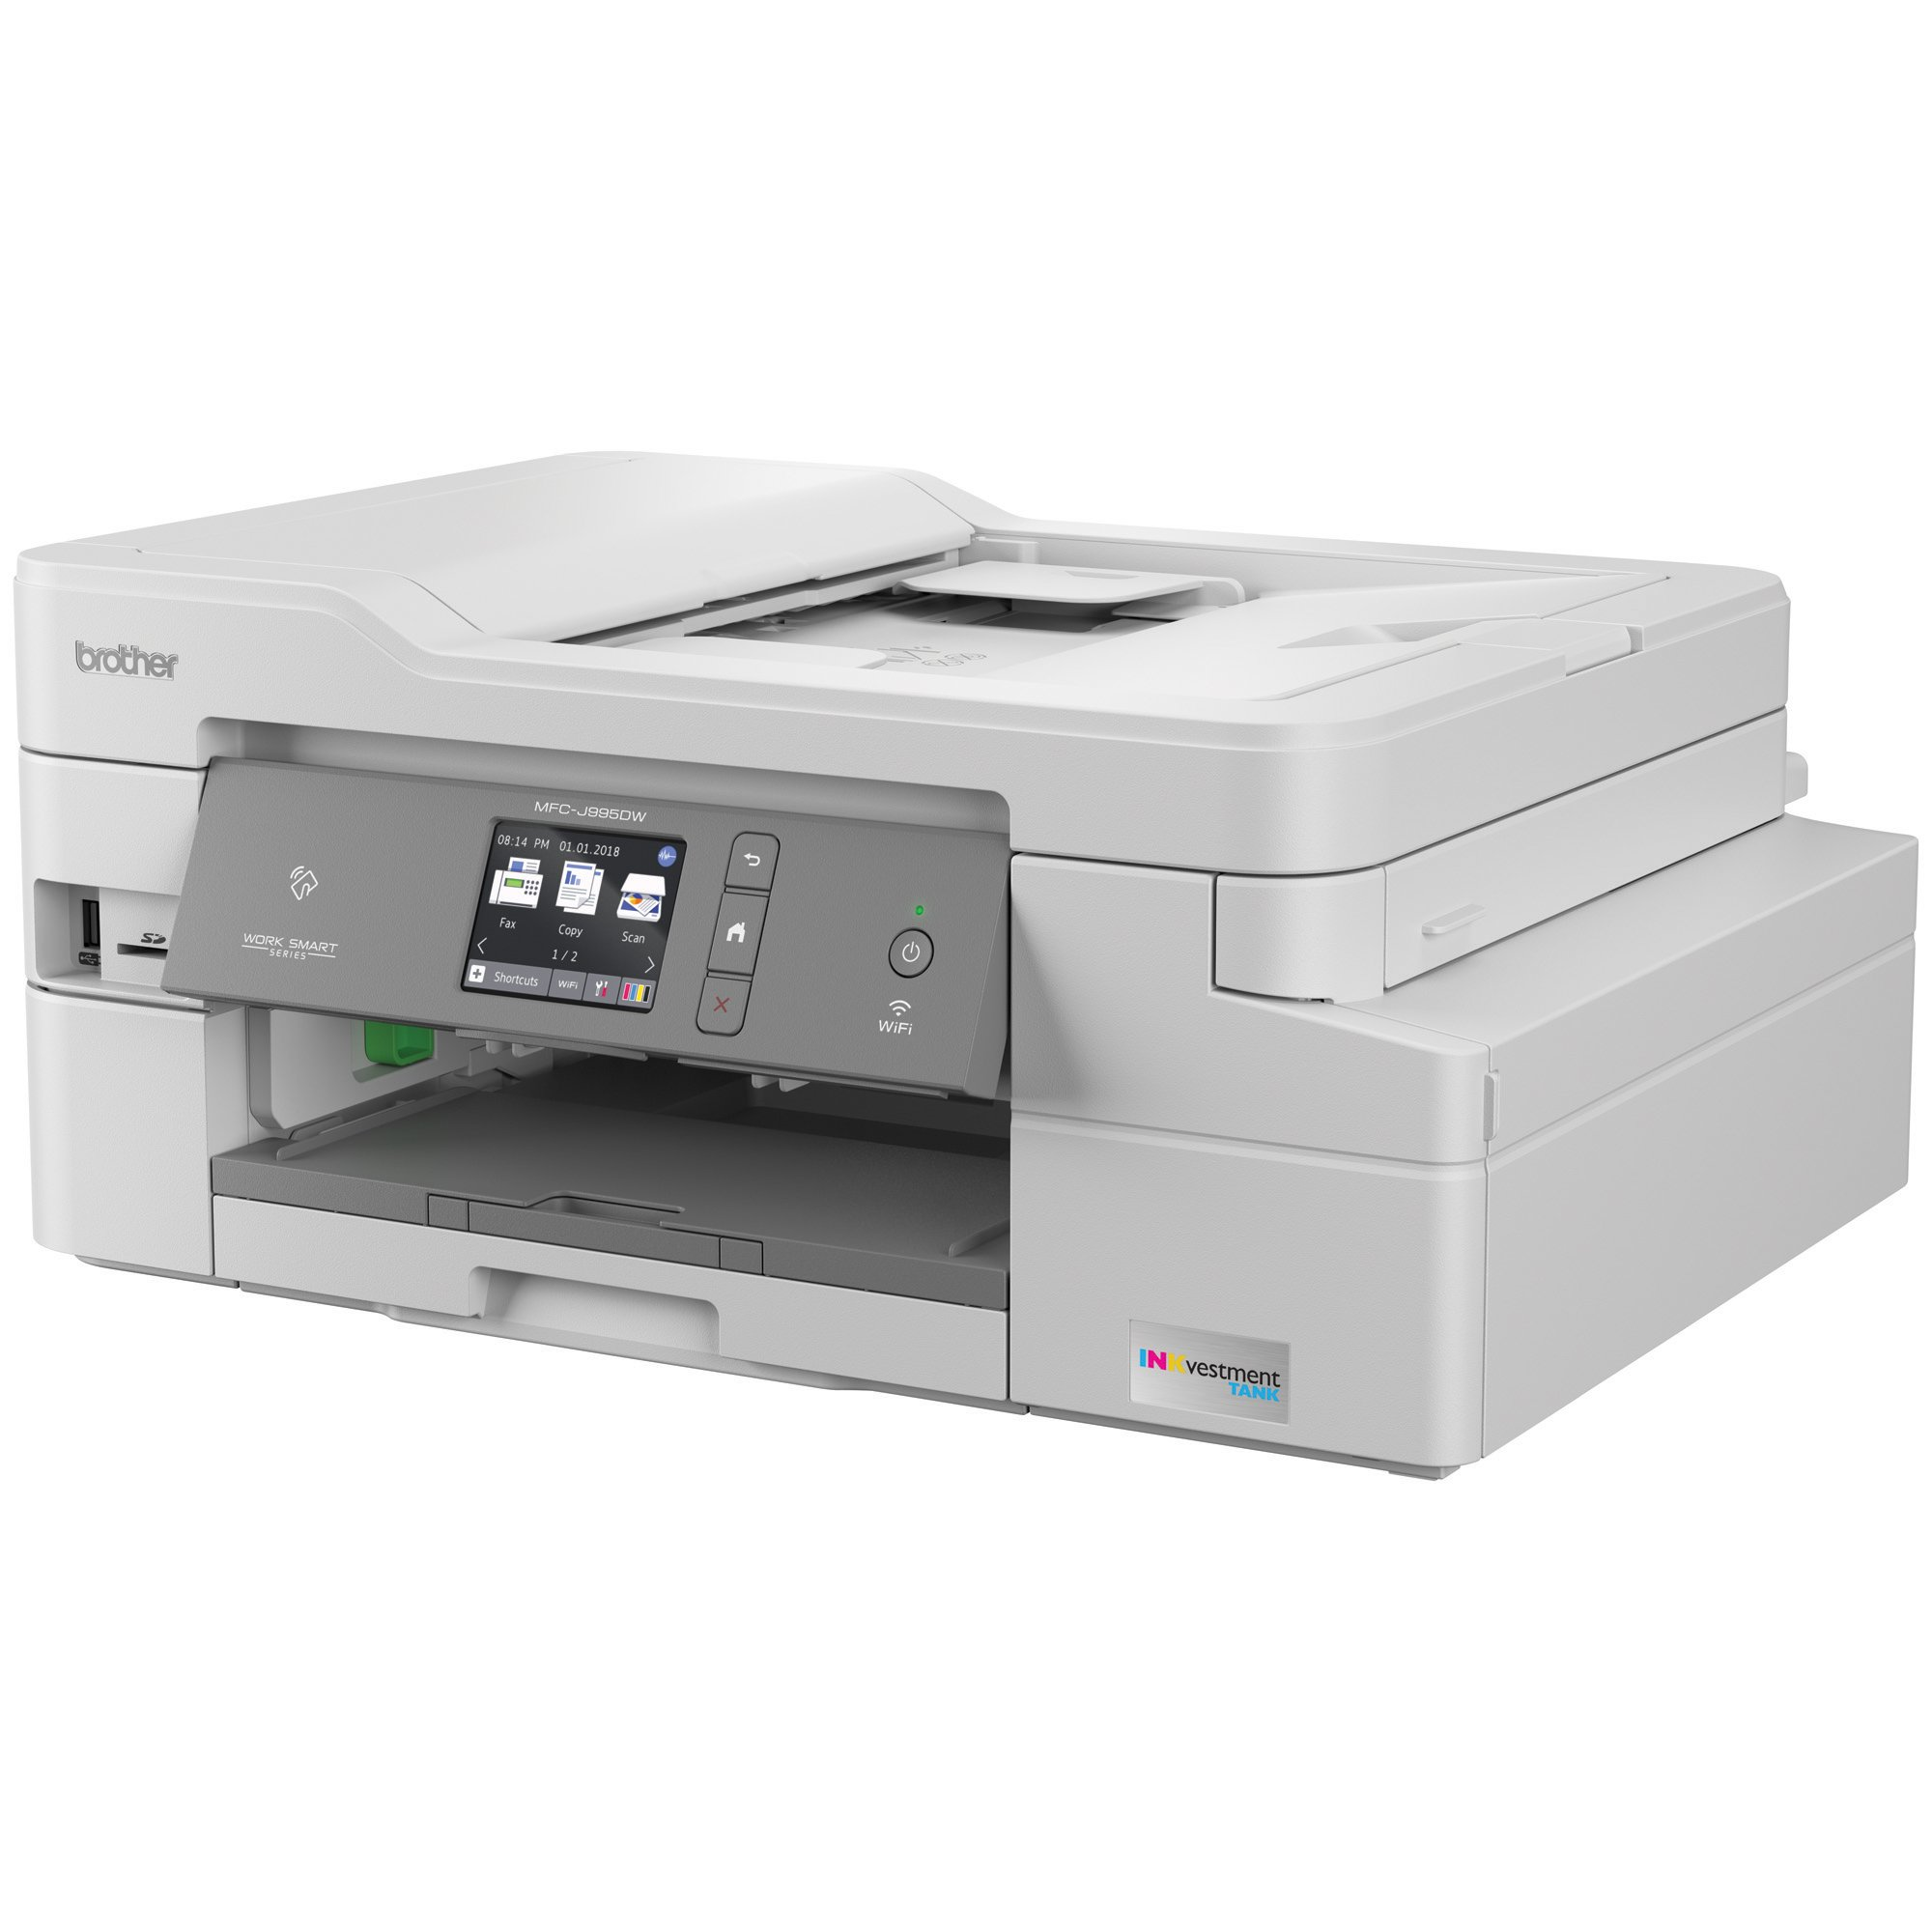 Brother INKvestmentTank Inkjet Printer, MFC-J995DW XL, Extended Print, Color All-in-One Printer, Mobile Printing Duplex Printing, up to 2-Years Ink in-Box by Brother (Image #2)